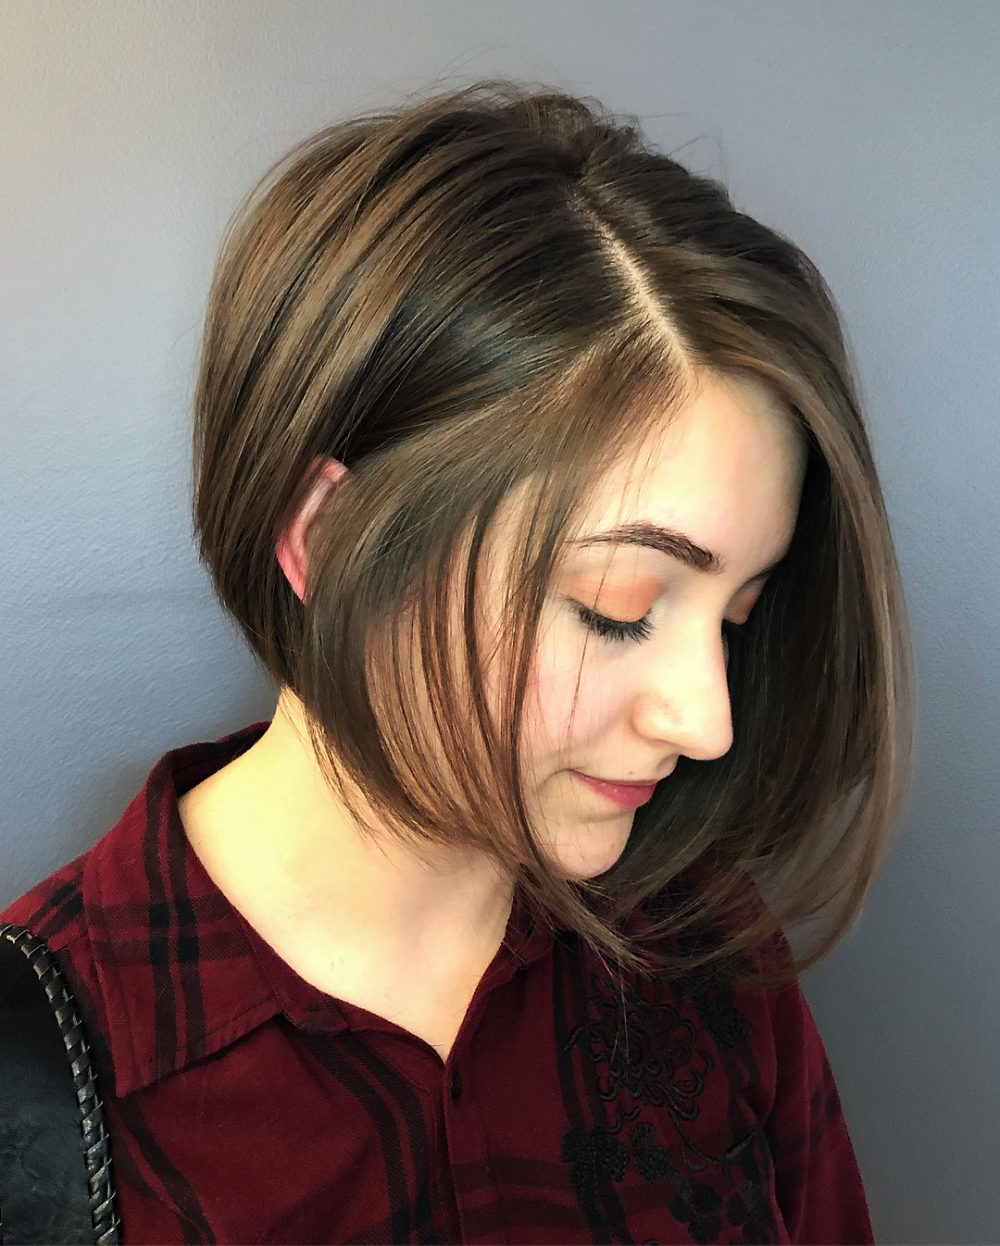 33 Flattering Short Hairstyles For Round Faces In 2018 Intended For Super Short Hairstyles For Round Faces (View 6 of 25)